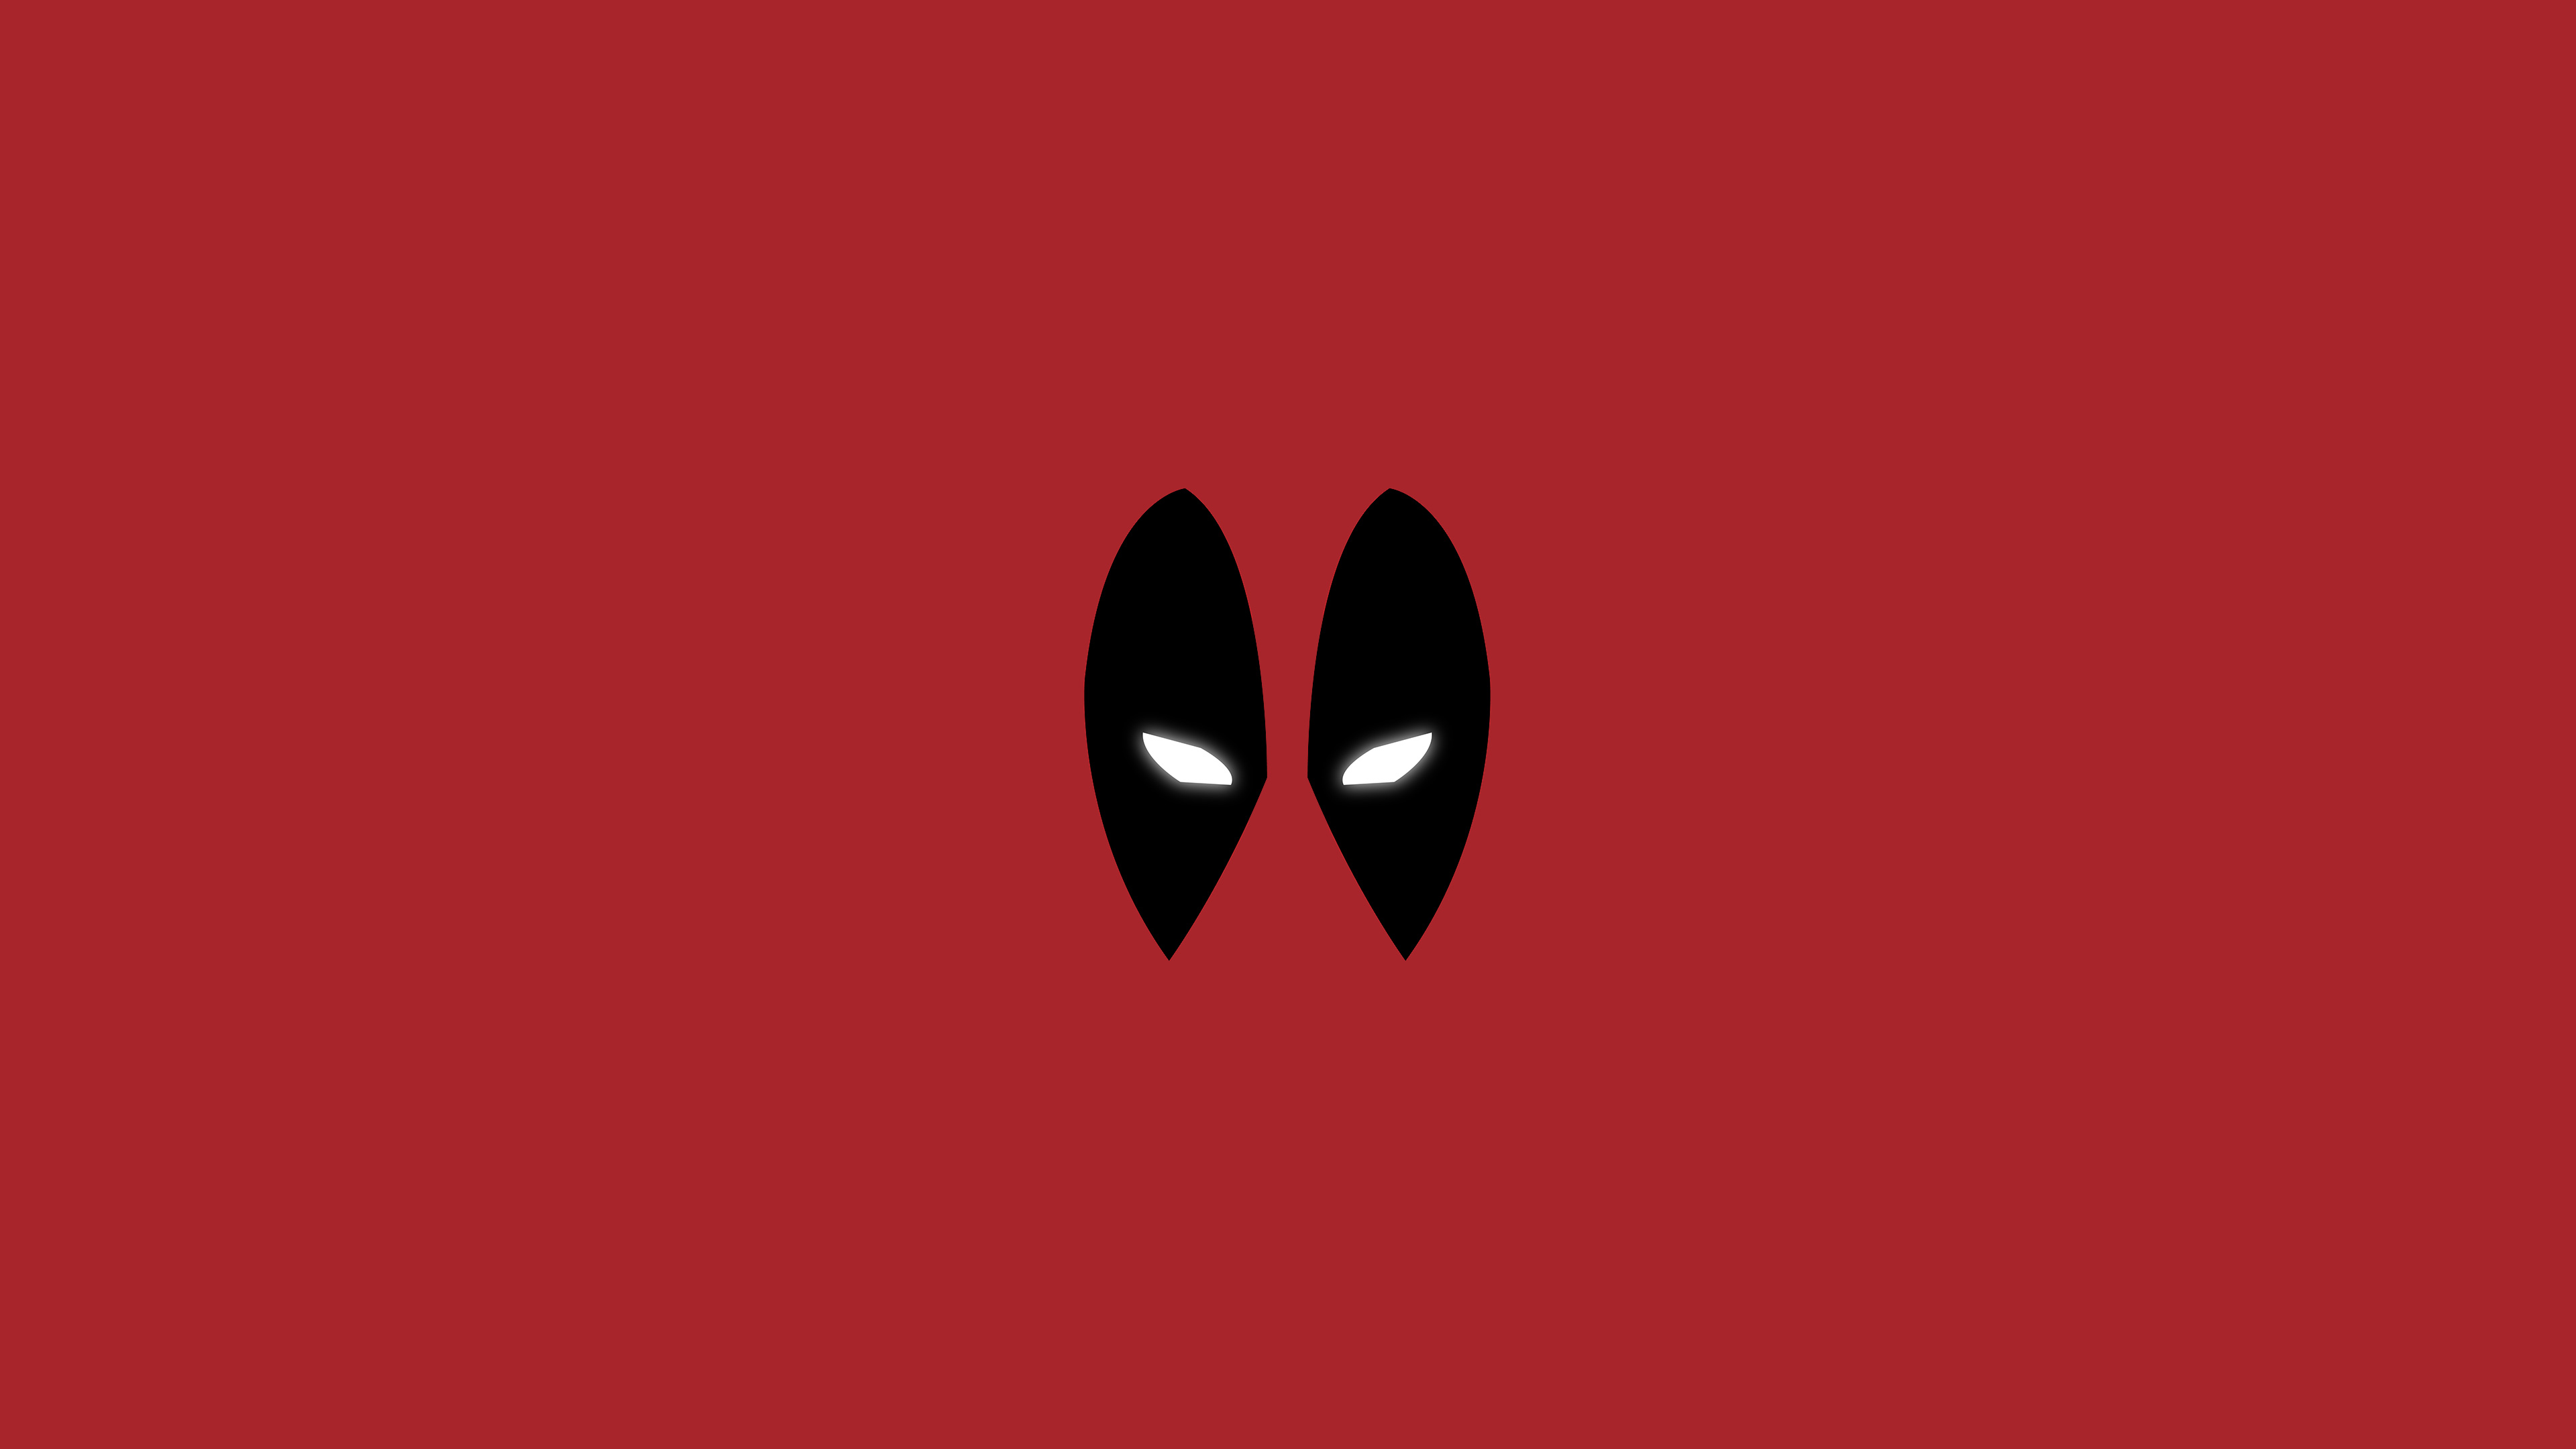 Deadpool Marvel Hero Hd Logo 4k Wallpapers Images